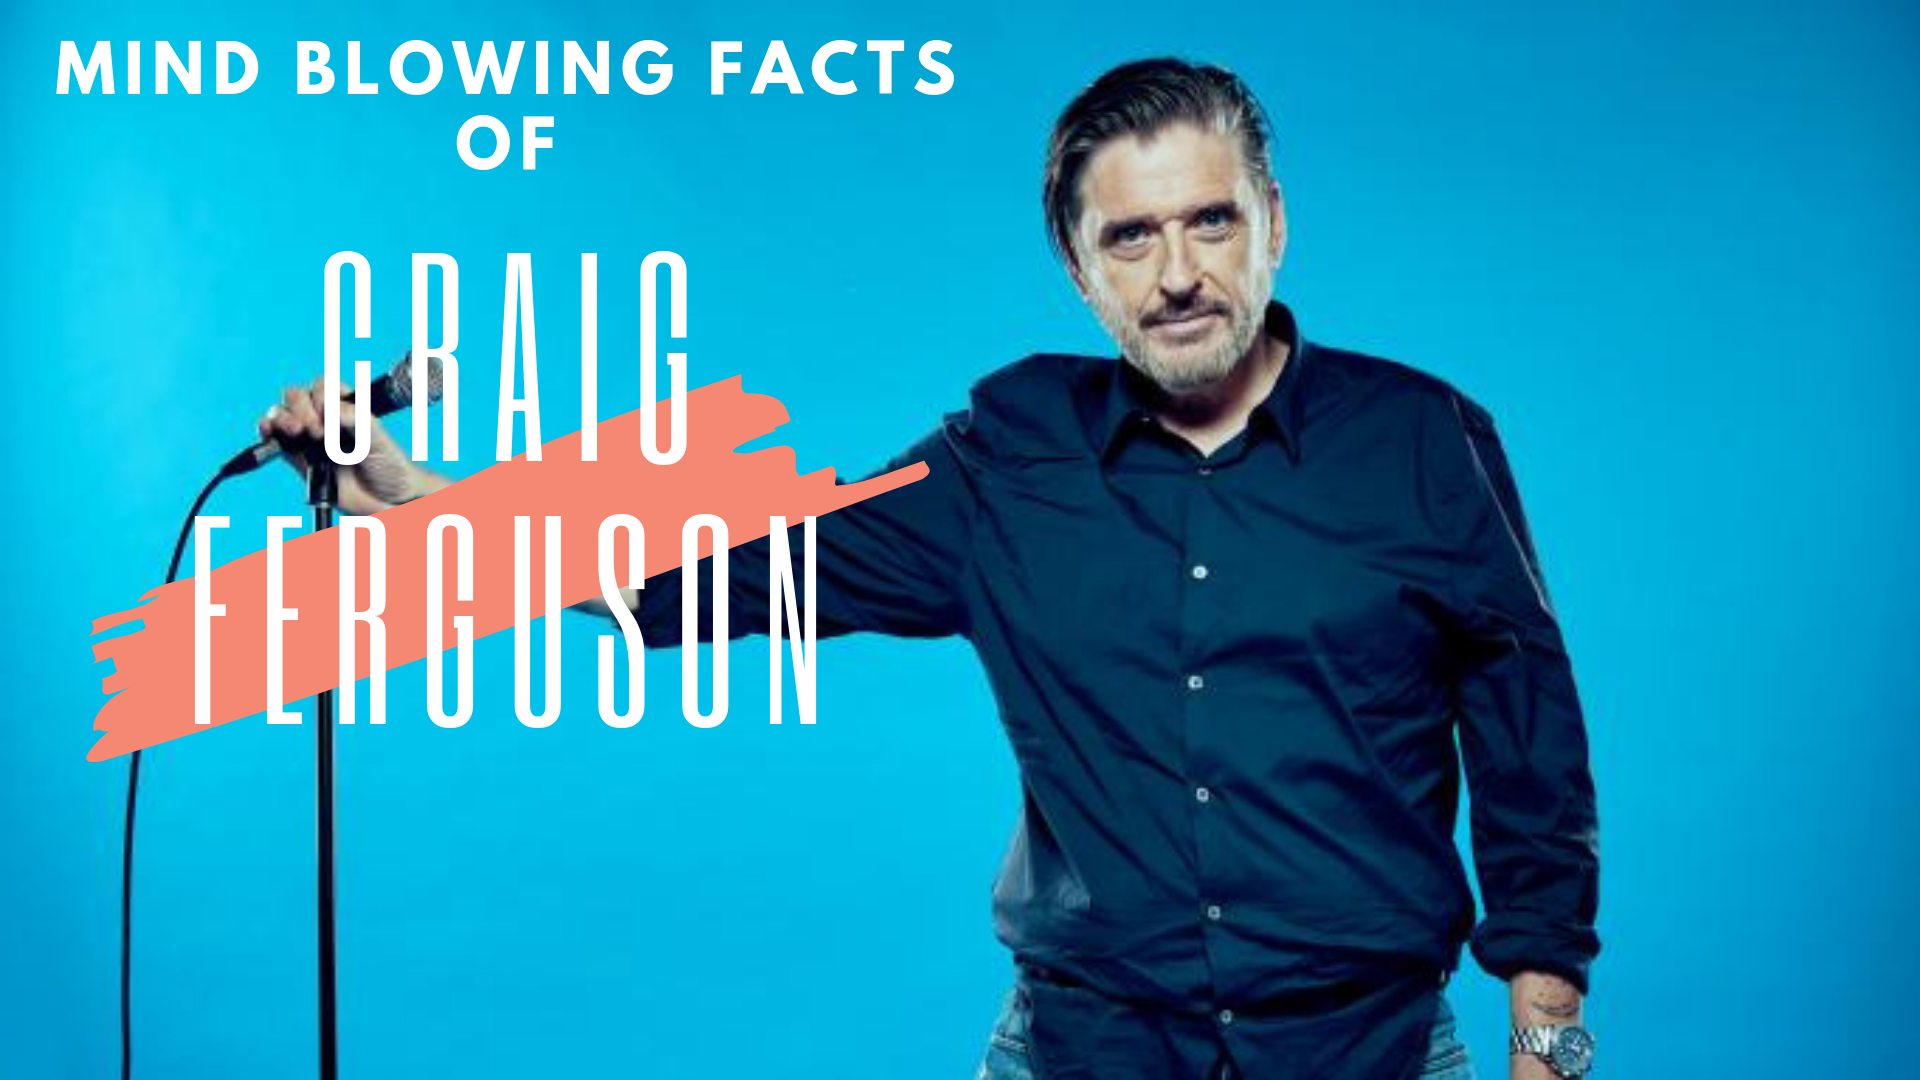 Mind Blowing Facts about Craig Ferguson that you don't want to miss !